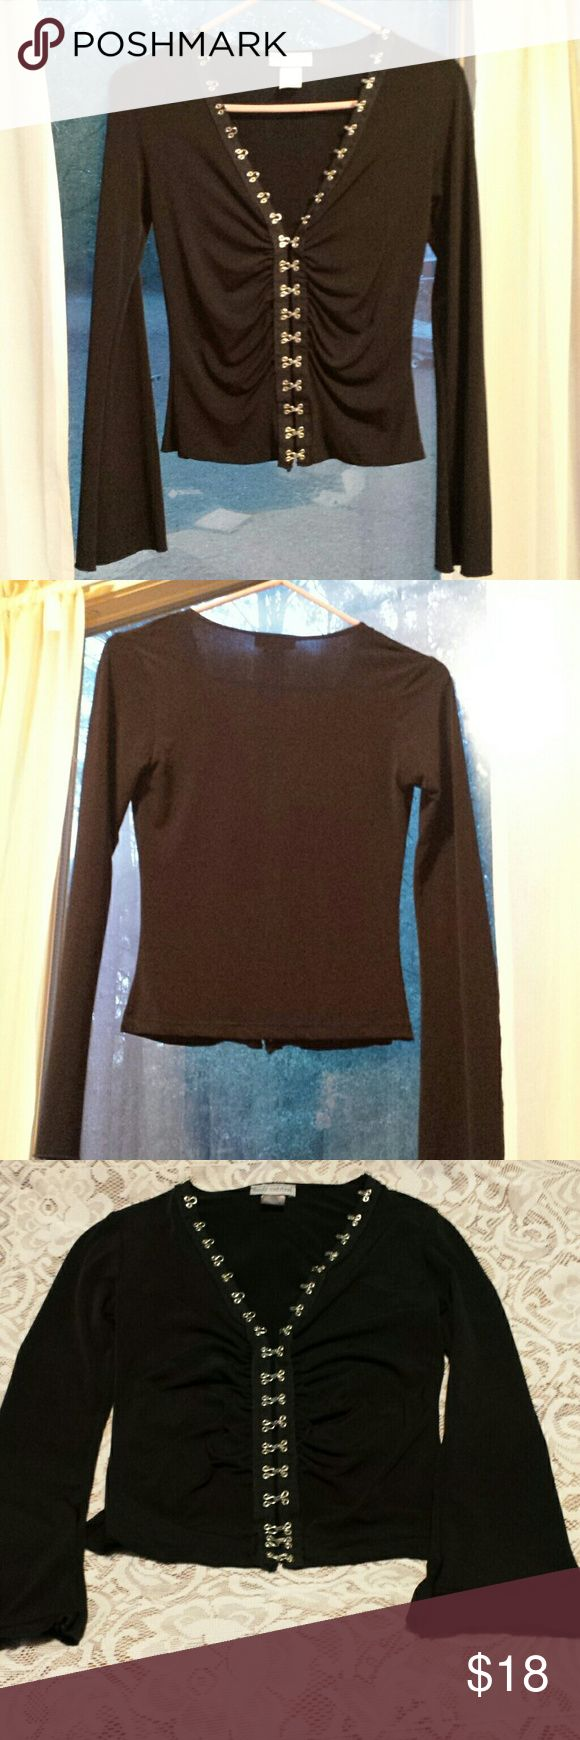 Sexy Black Blouse by Body Central. Size Small Black long sleeved blouse with silver accents by Body Central. Sexy and cute. In excellent pre-loved condition. Hand washed and air dried. 92% Polyester, 8% Spandex. Size Small. Body Central Tops Blouses